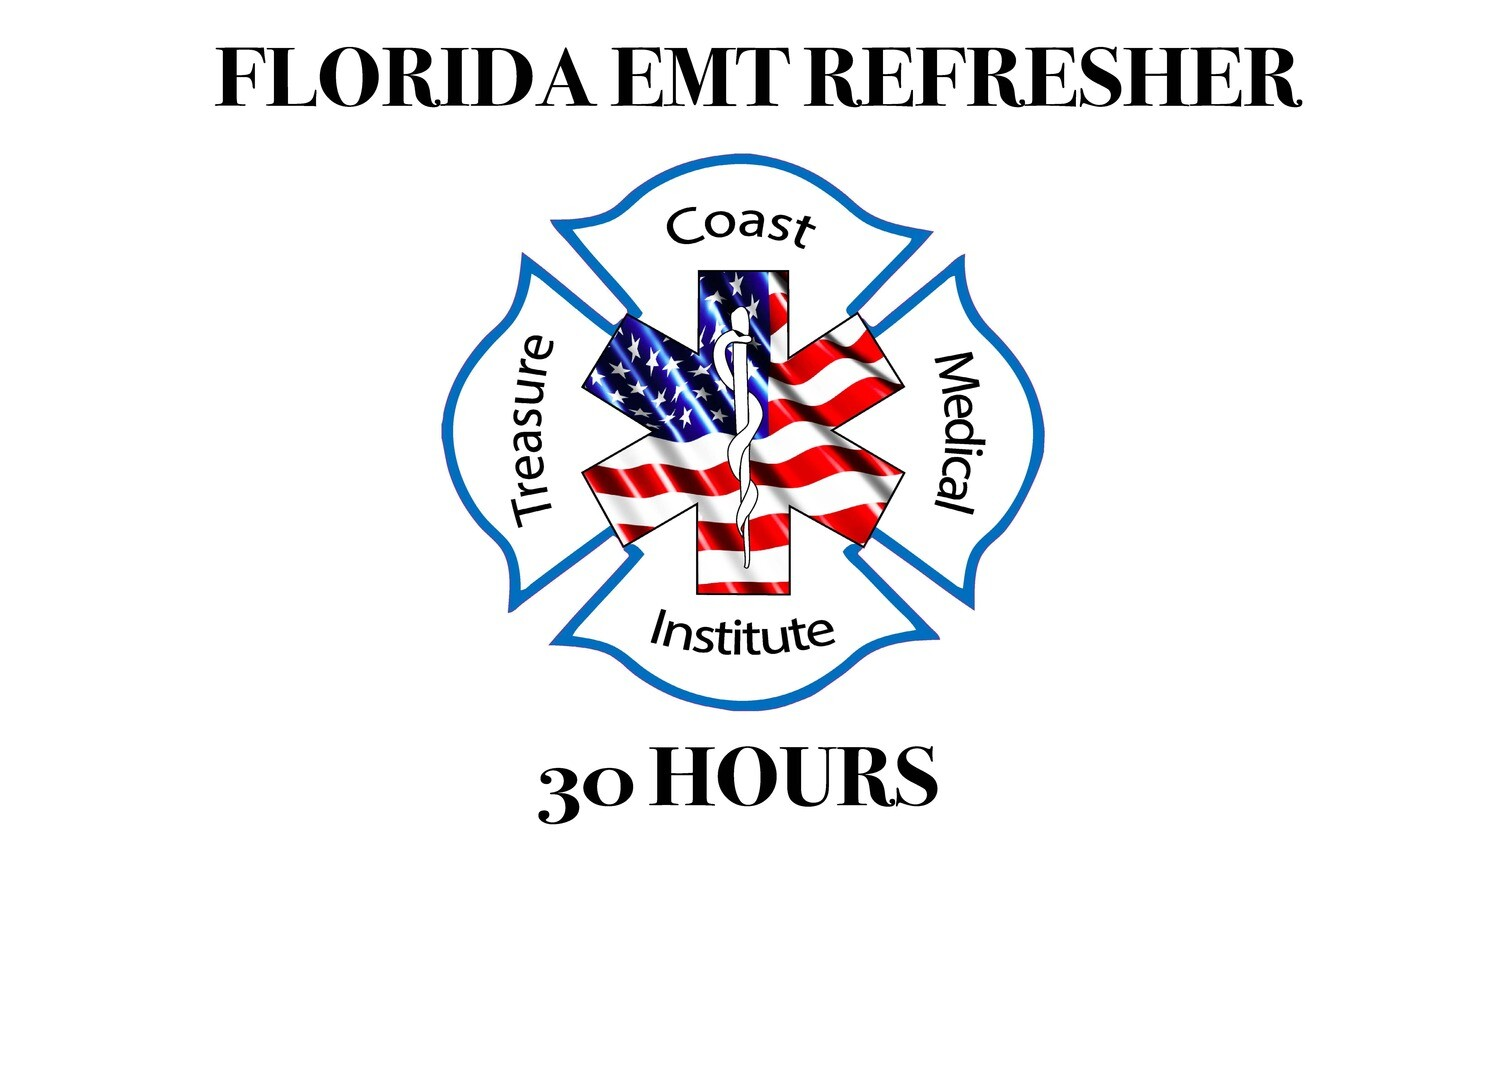 Florida EMT Refresher 30 hours (non-refundable)